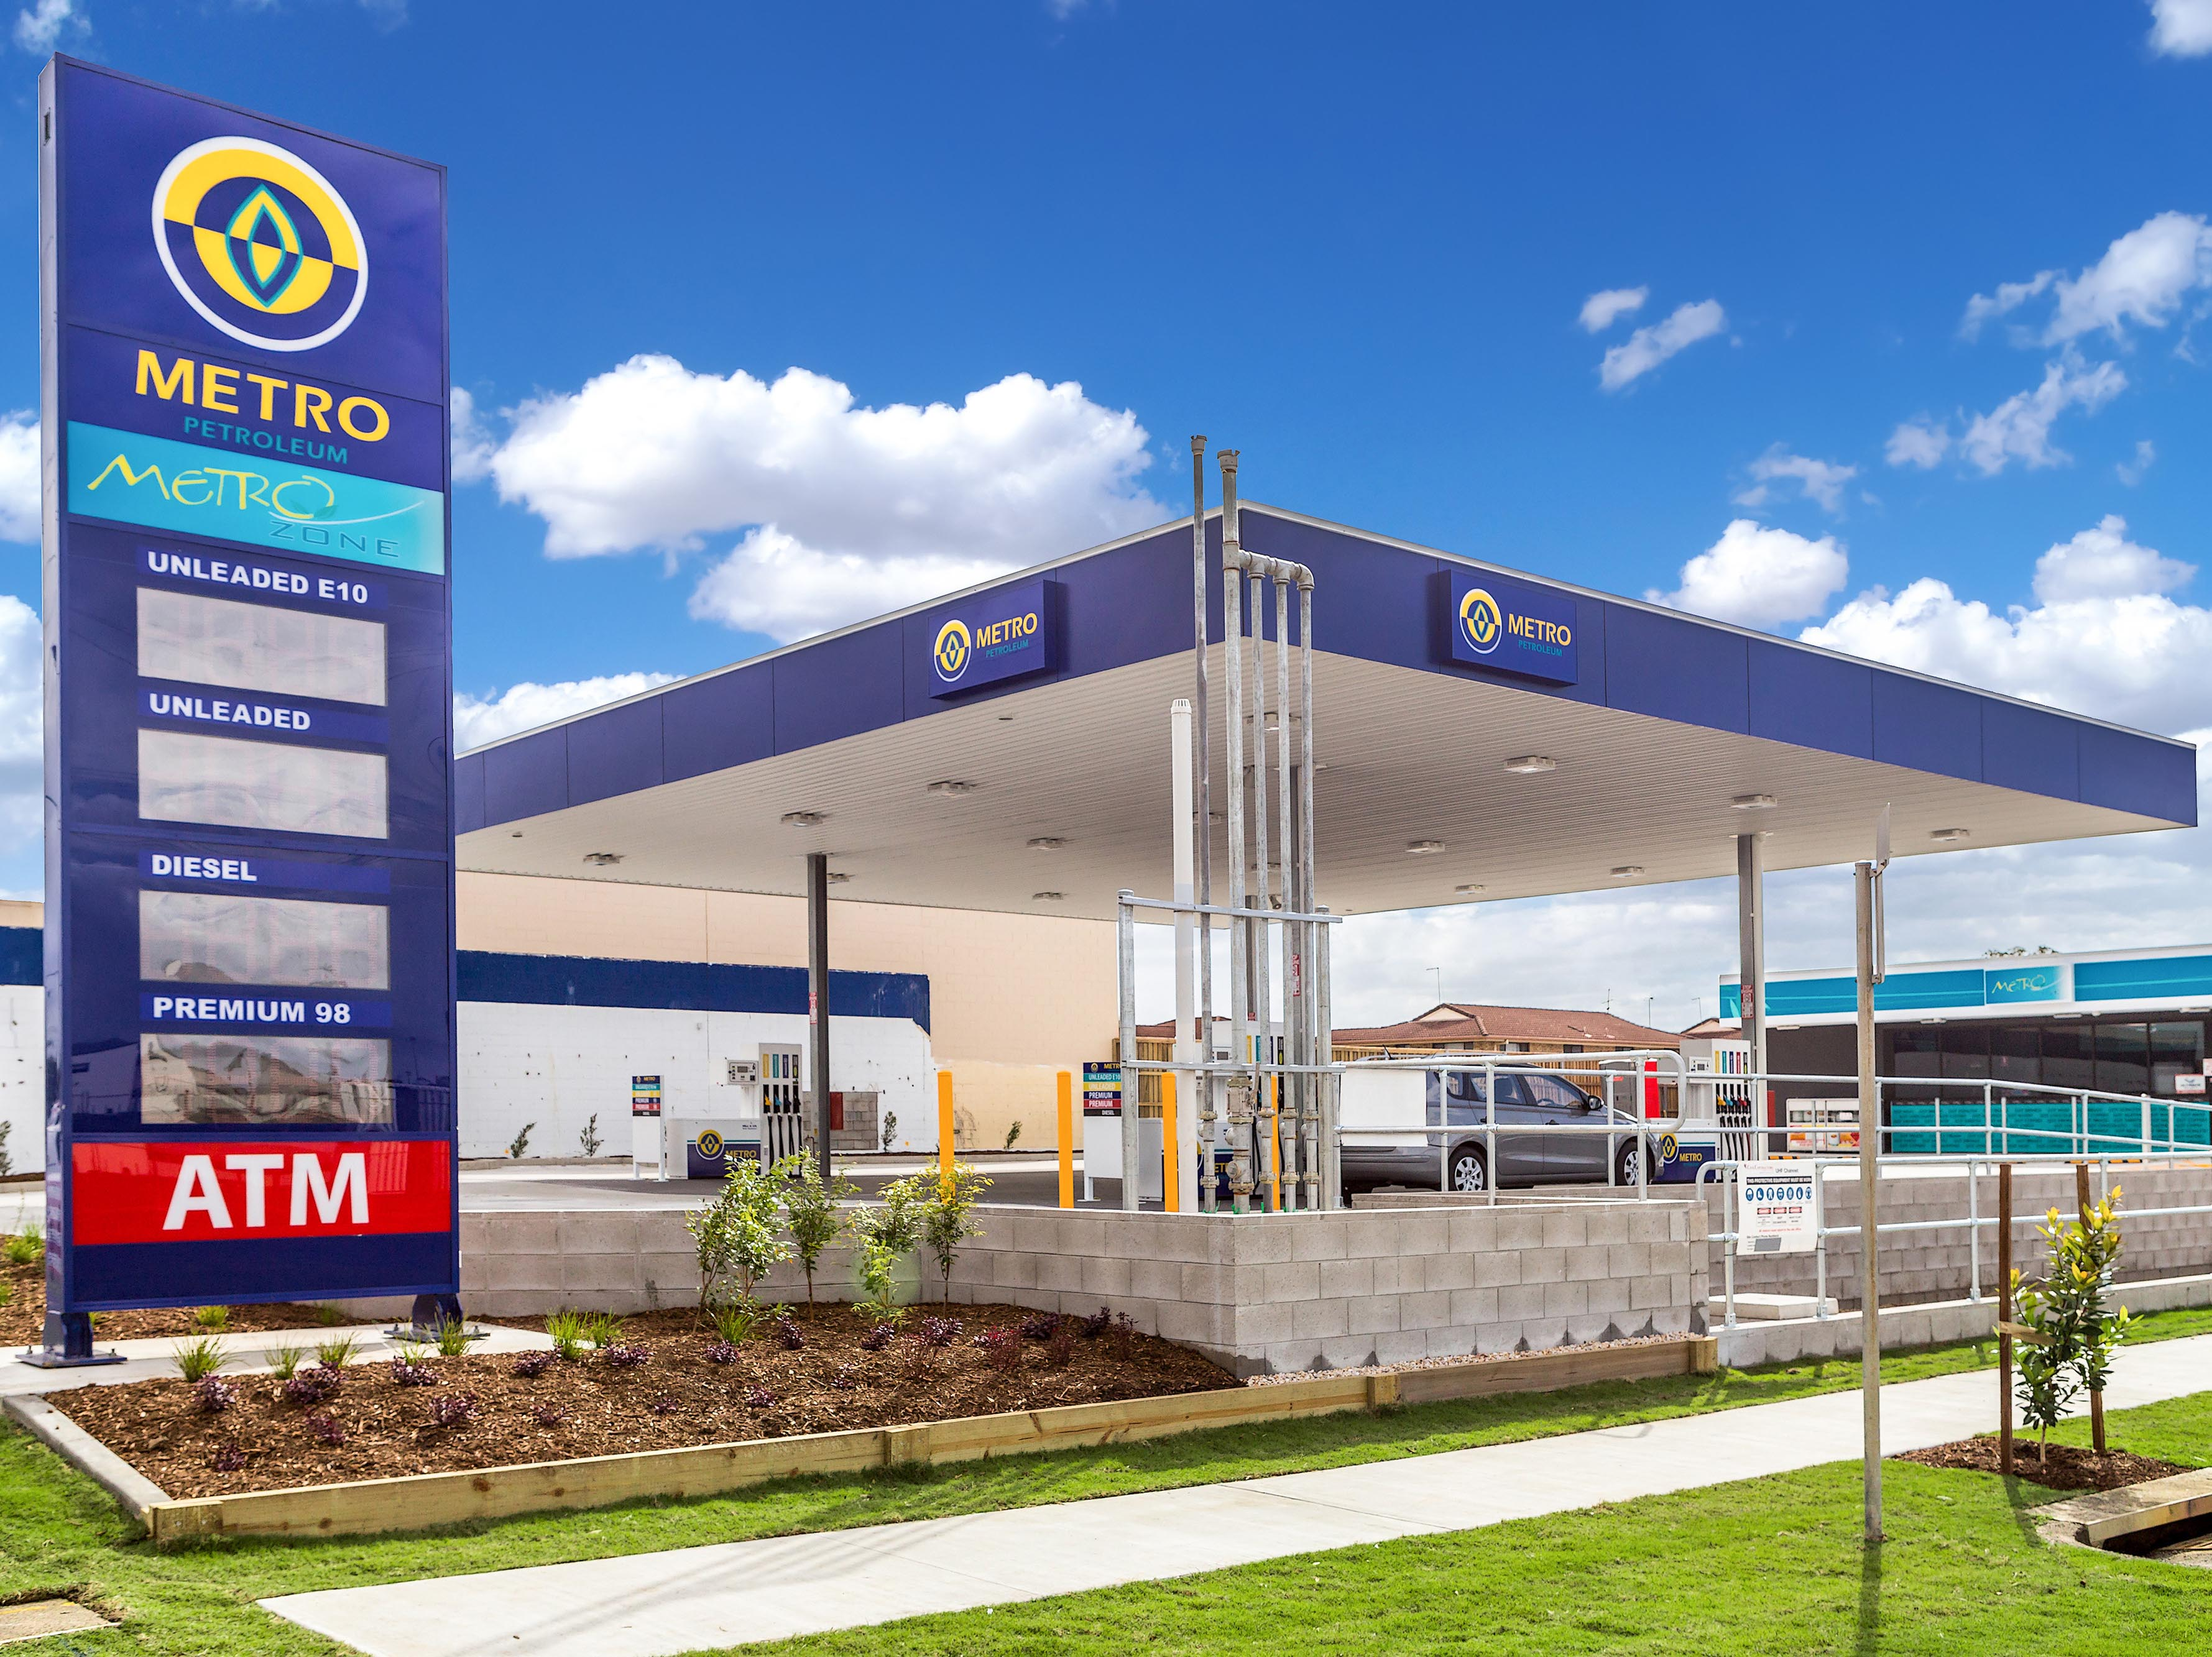 Brand New Metro Service Station Now Open